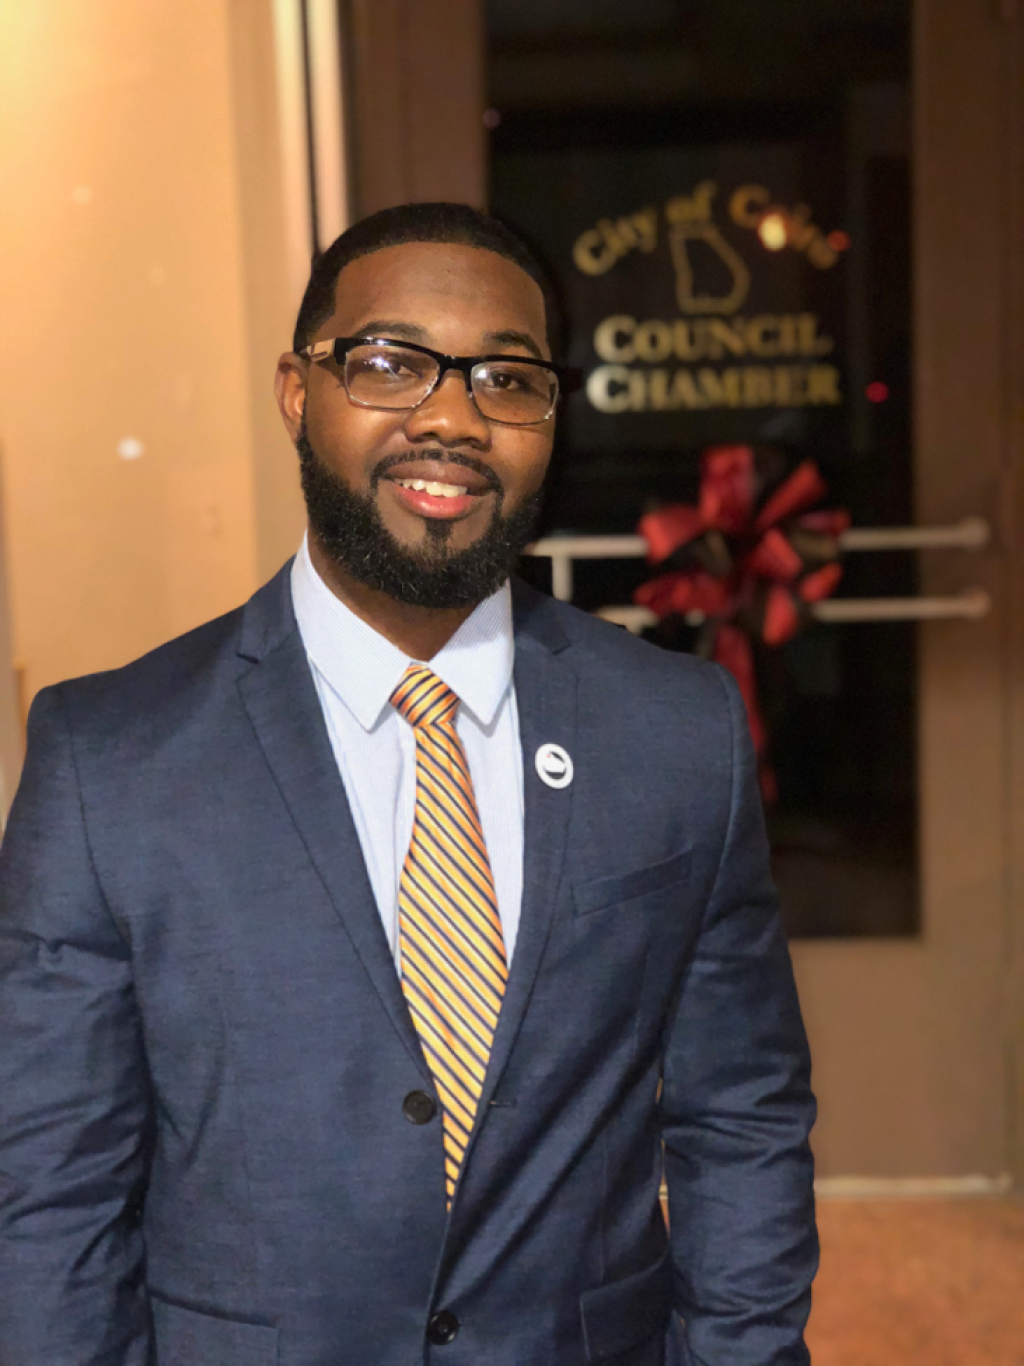 FAMU grad first African-American mayor of nearby Cairo